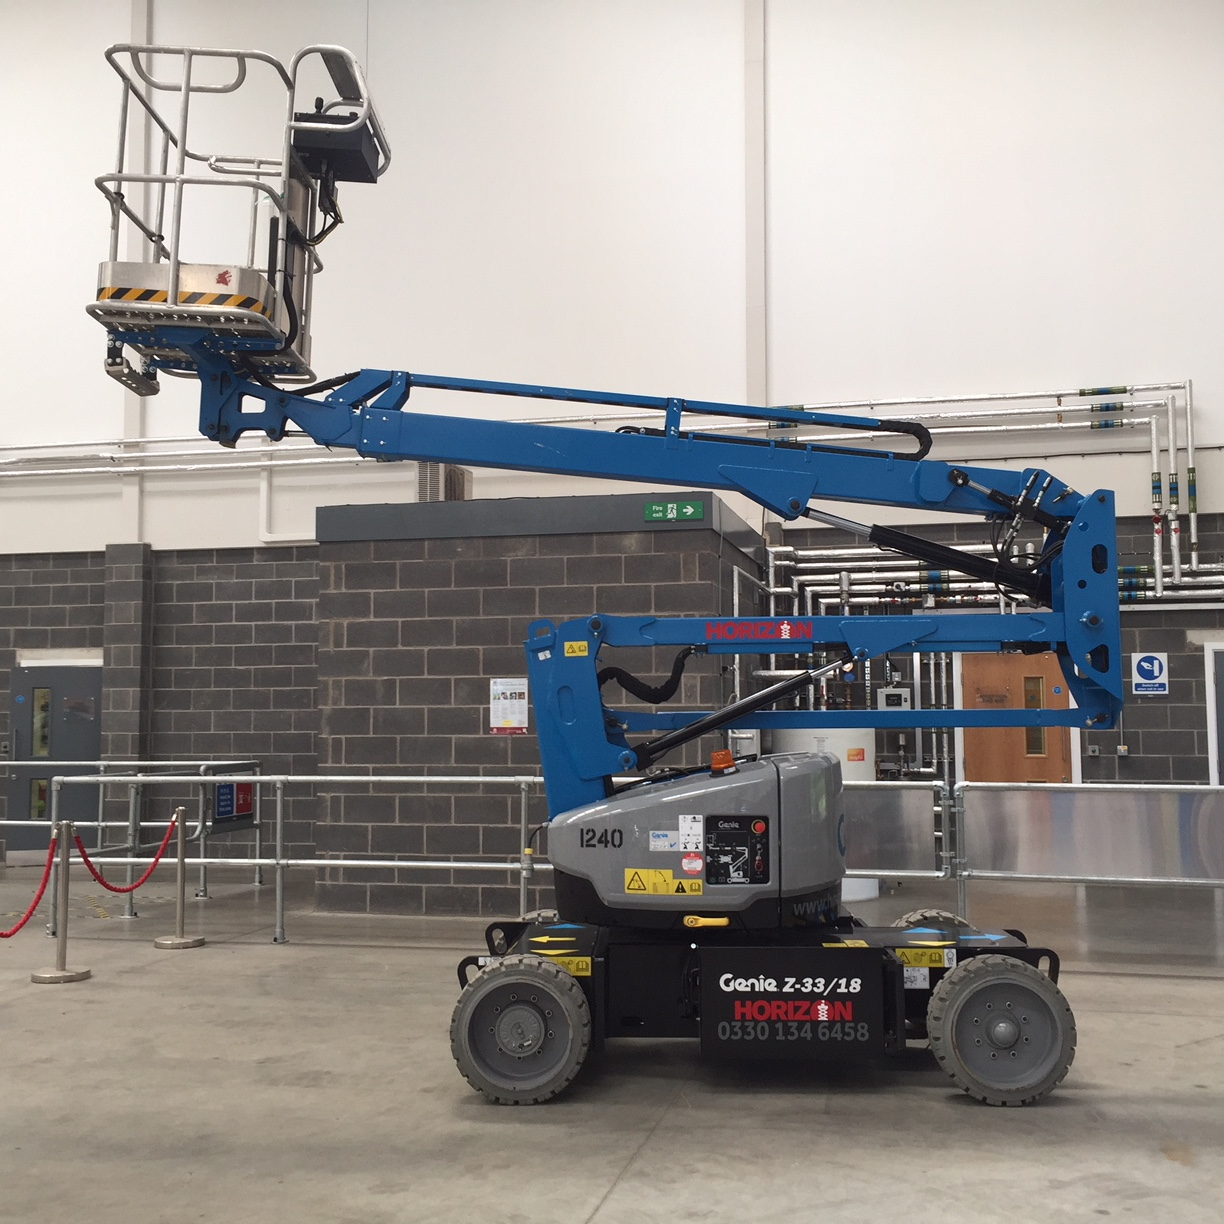 Mewps Access Platforms For Shopfitters Fit Out Genie 3232 Scissor Lift Wiring Diagram 10m Battery Boom Z33 18